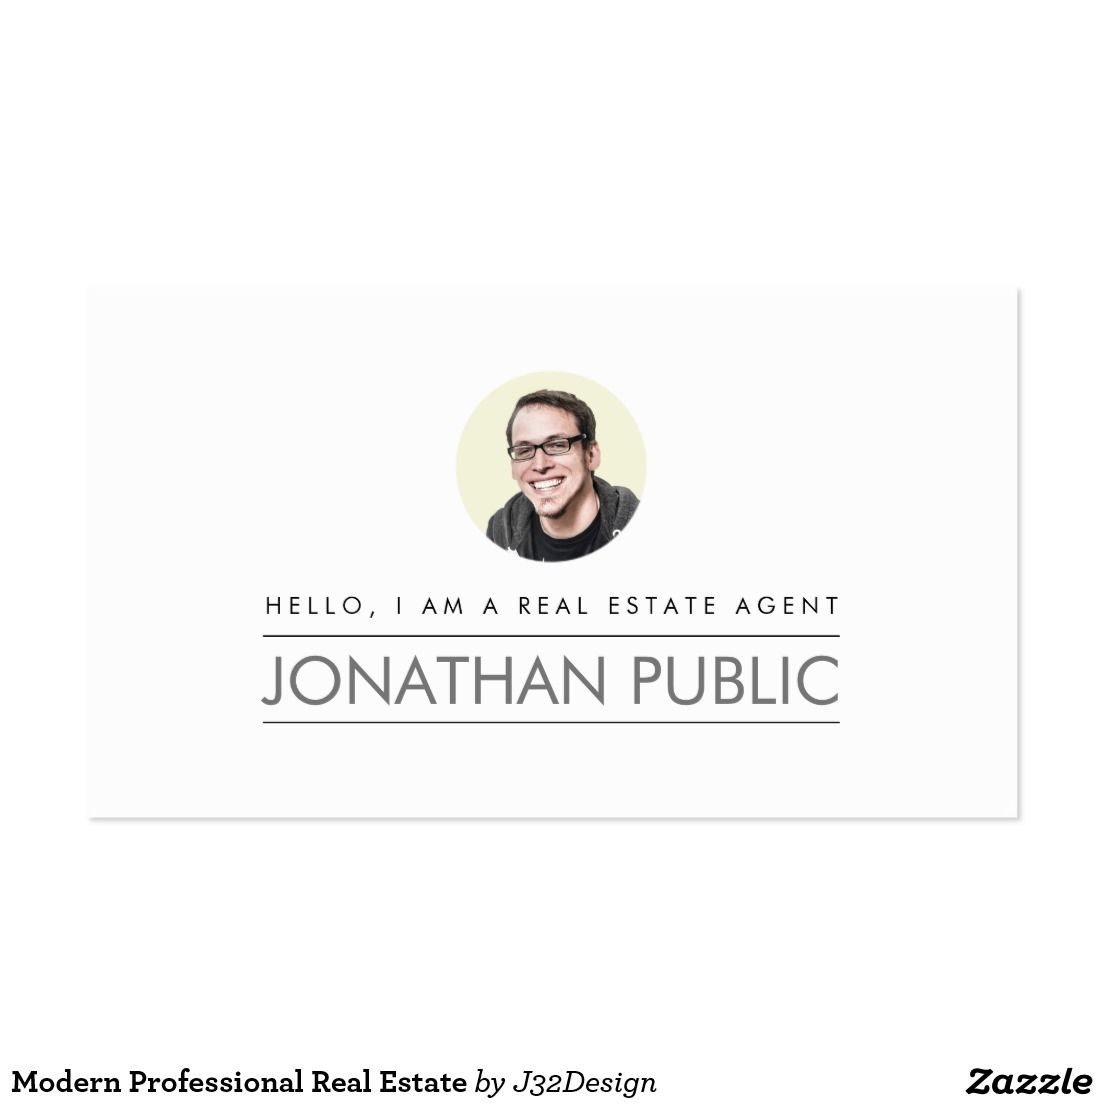 Modern Professional Real Estate Business Card Modern Professional